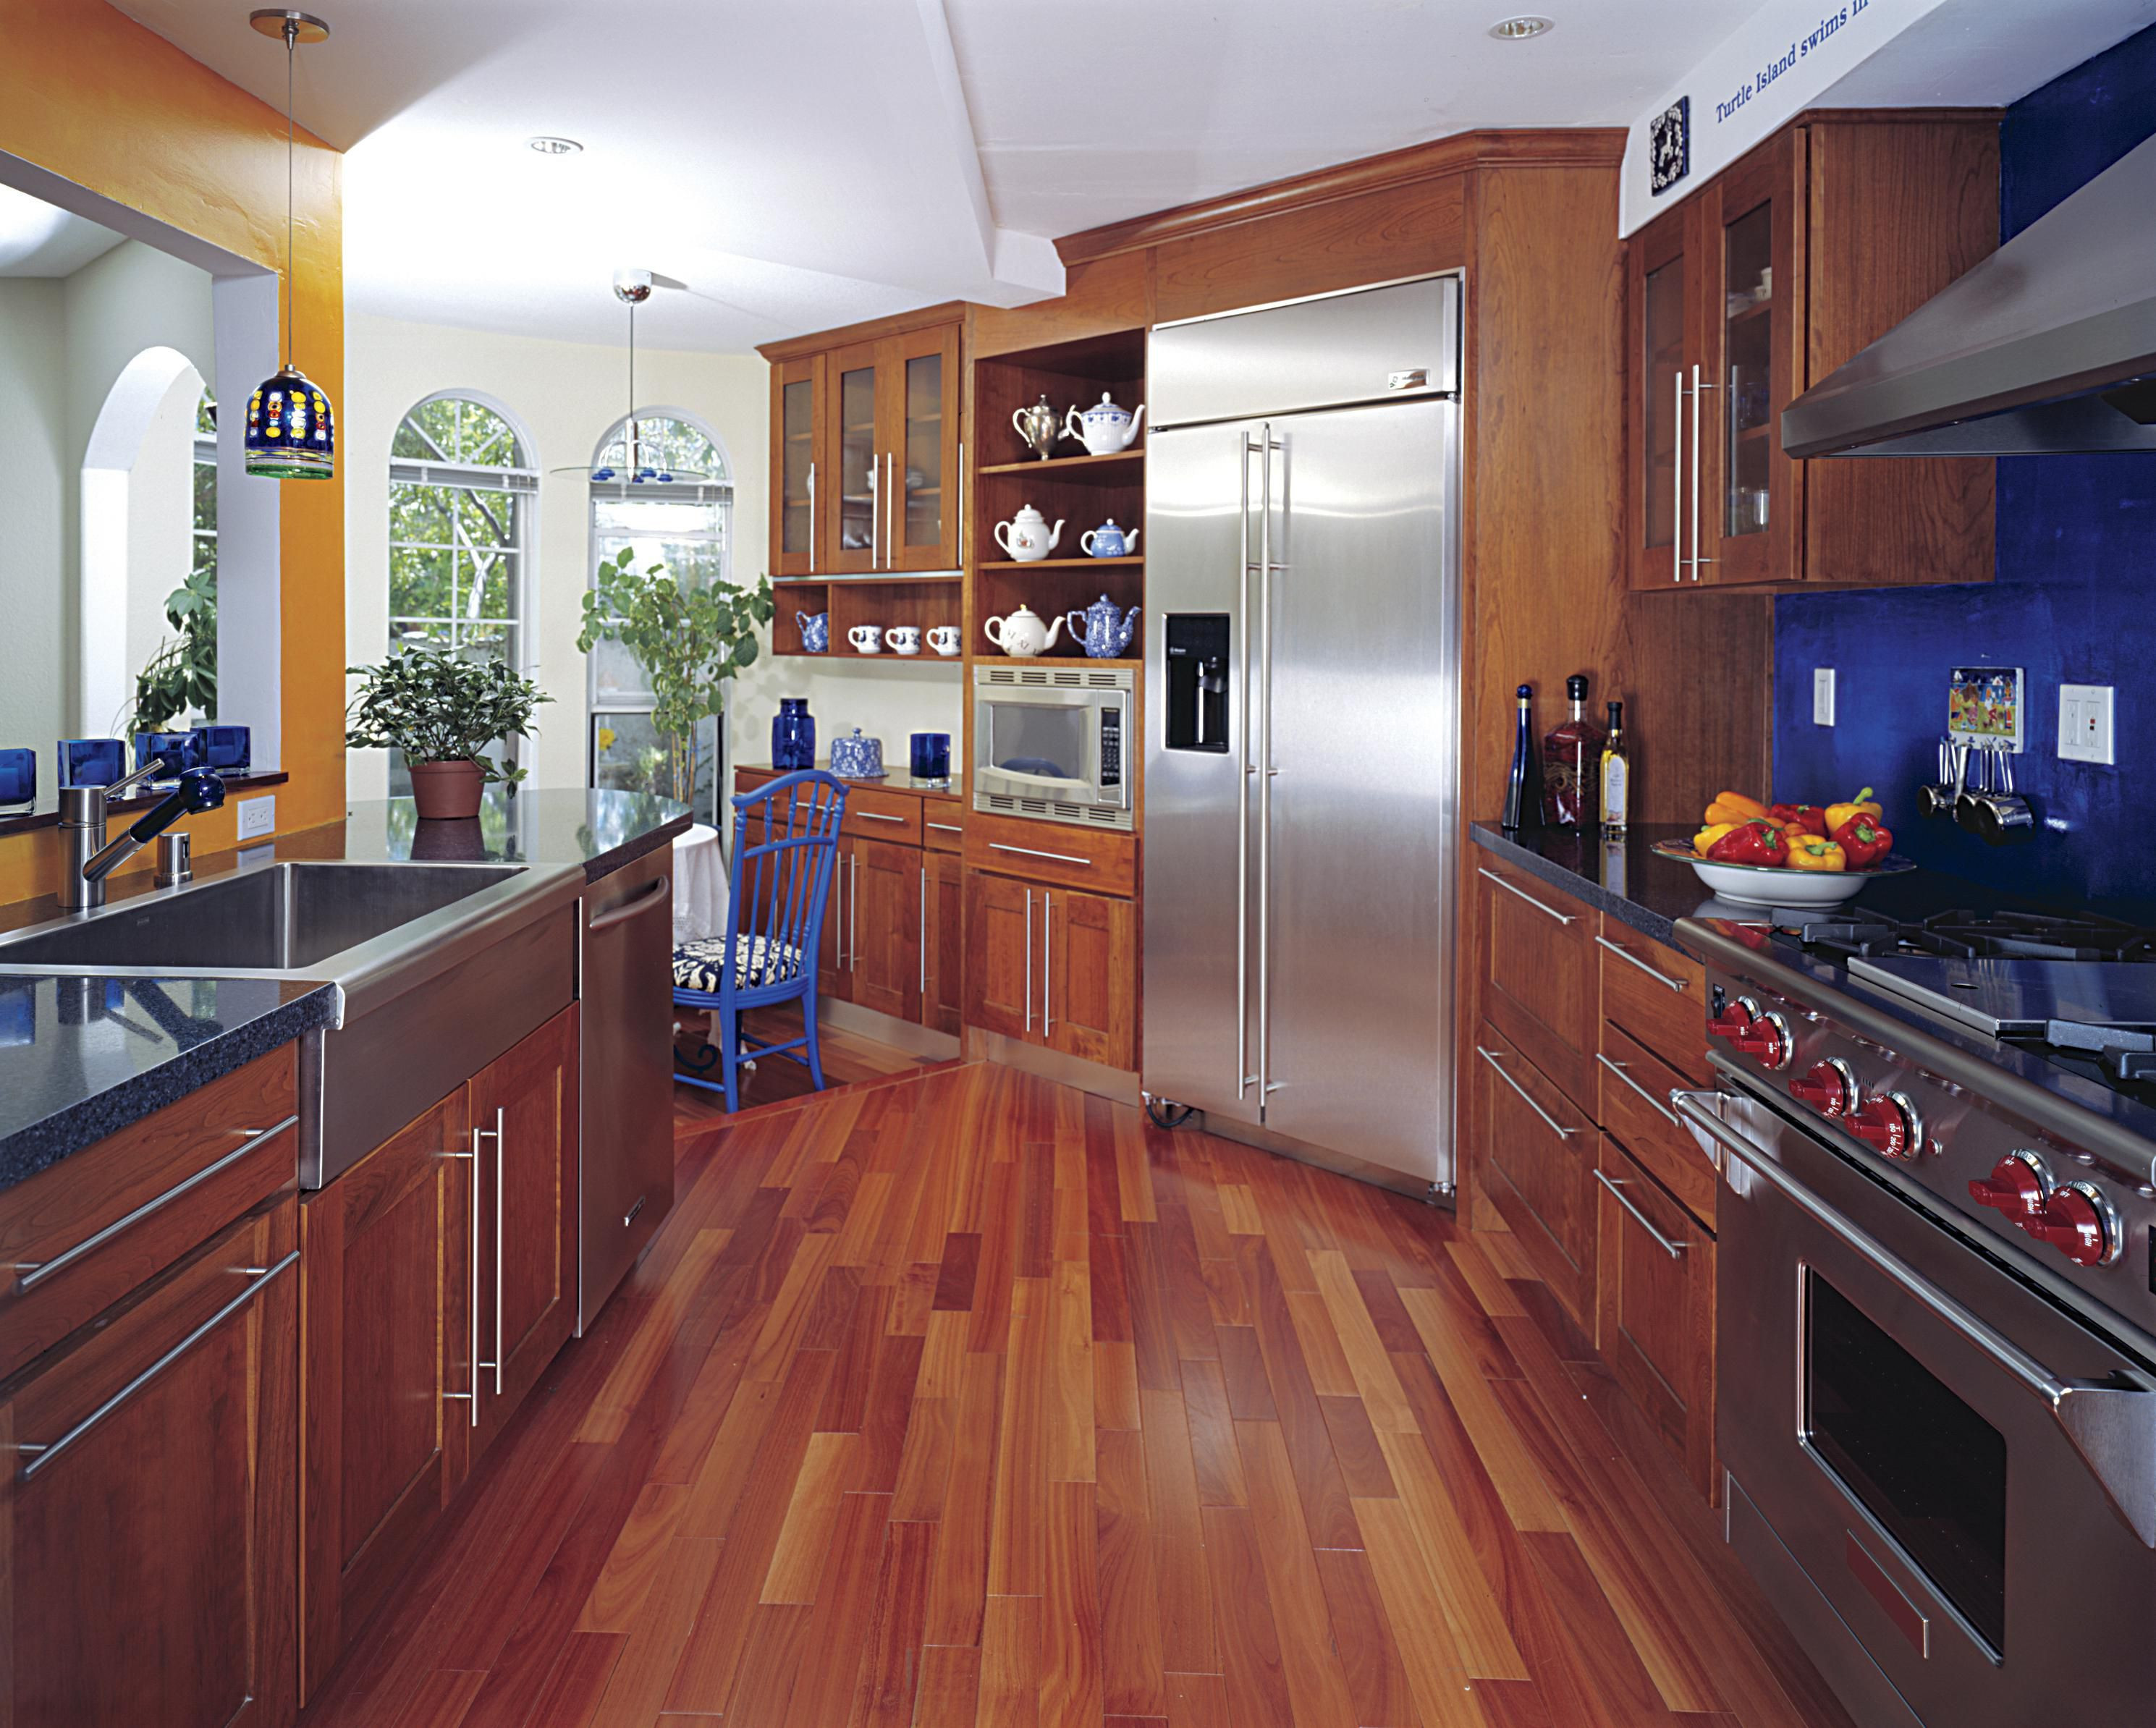 maple hardwood flooring reviews of hardwood floor in a kitchen is this allowed inside 186828472 56a49f3a5f9b58b7d0d7e142